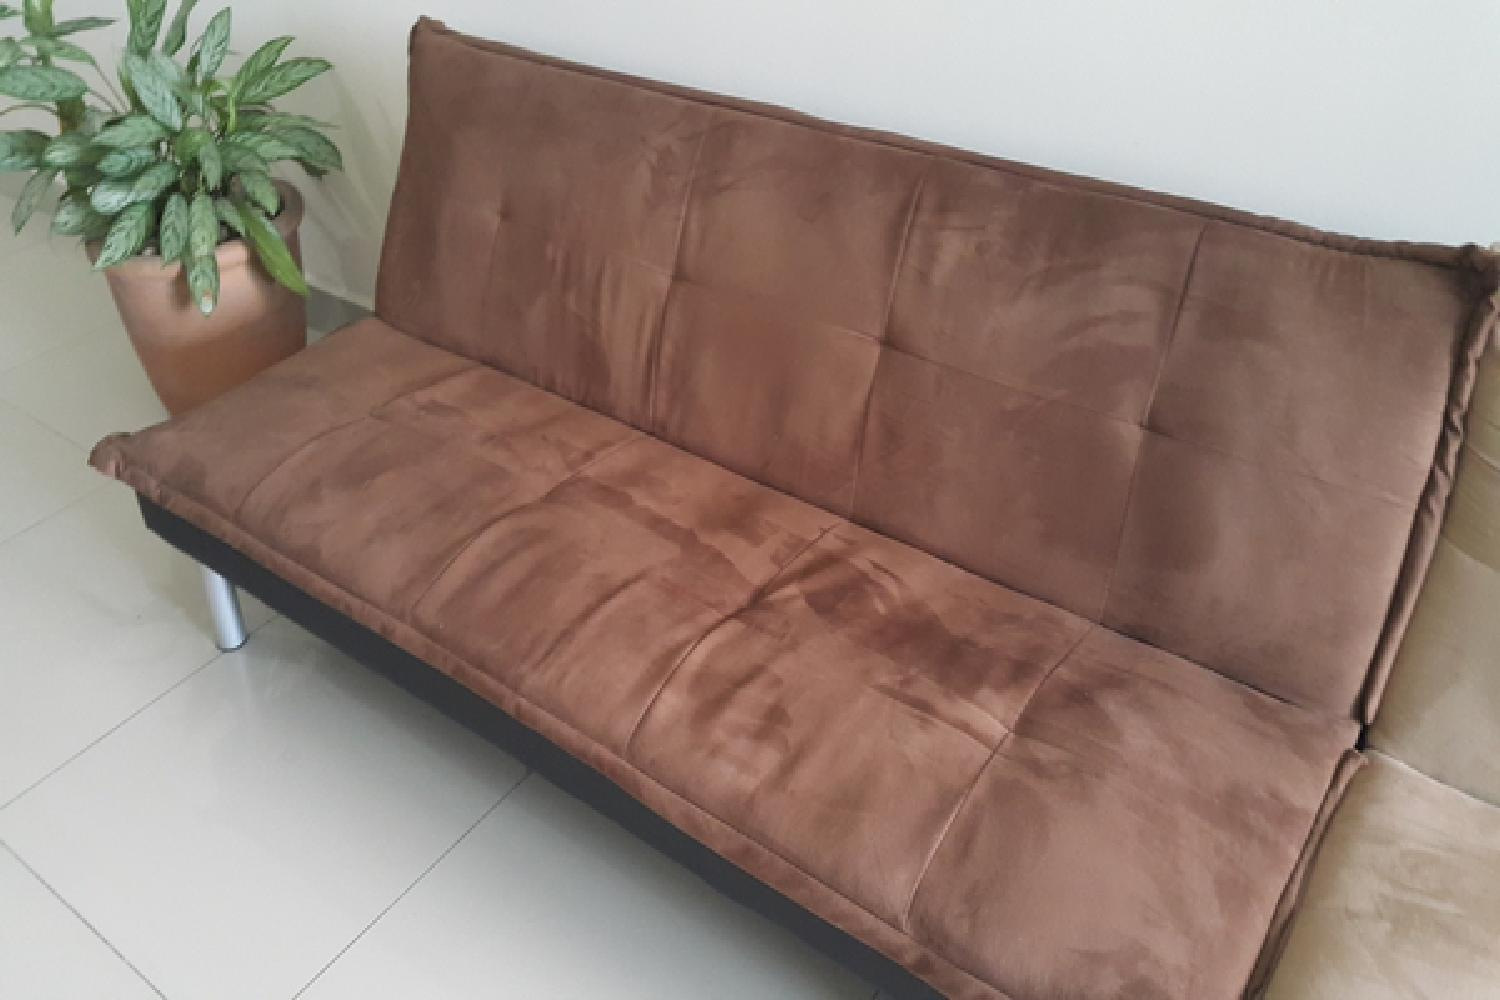 sofa cama encuentra24 panama leather sofas best quality 1 by apartment rental issuu